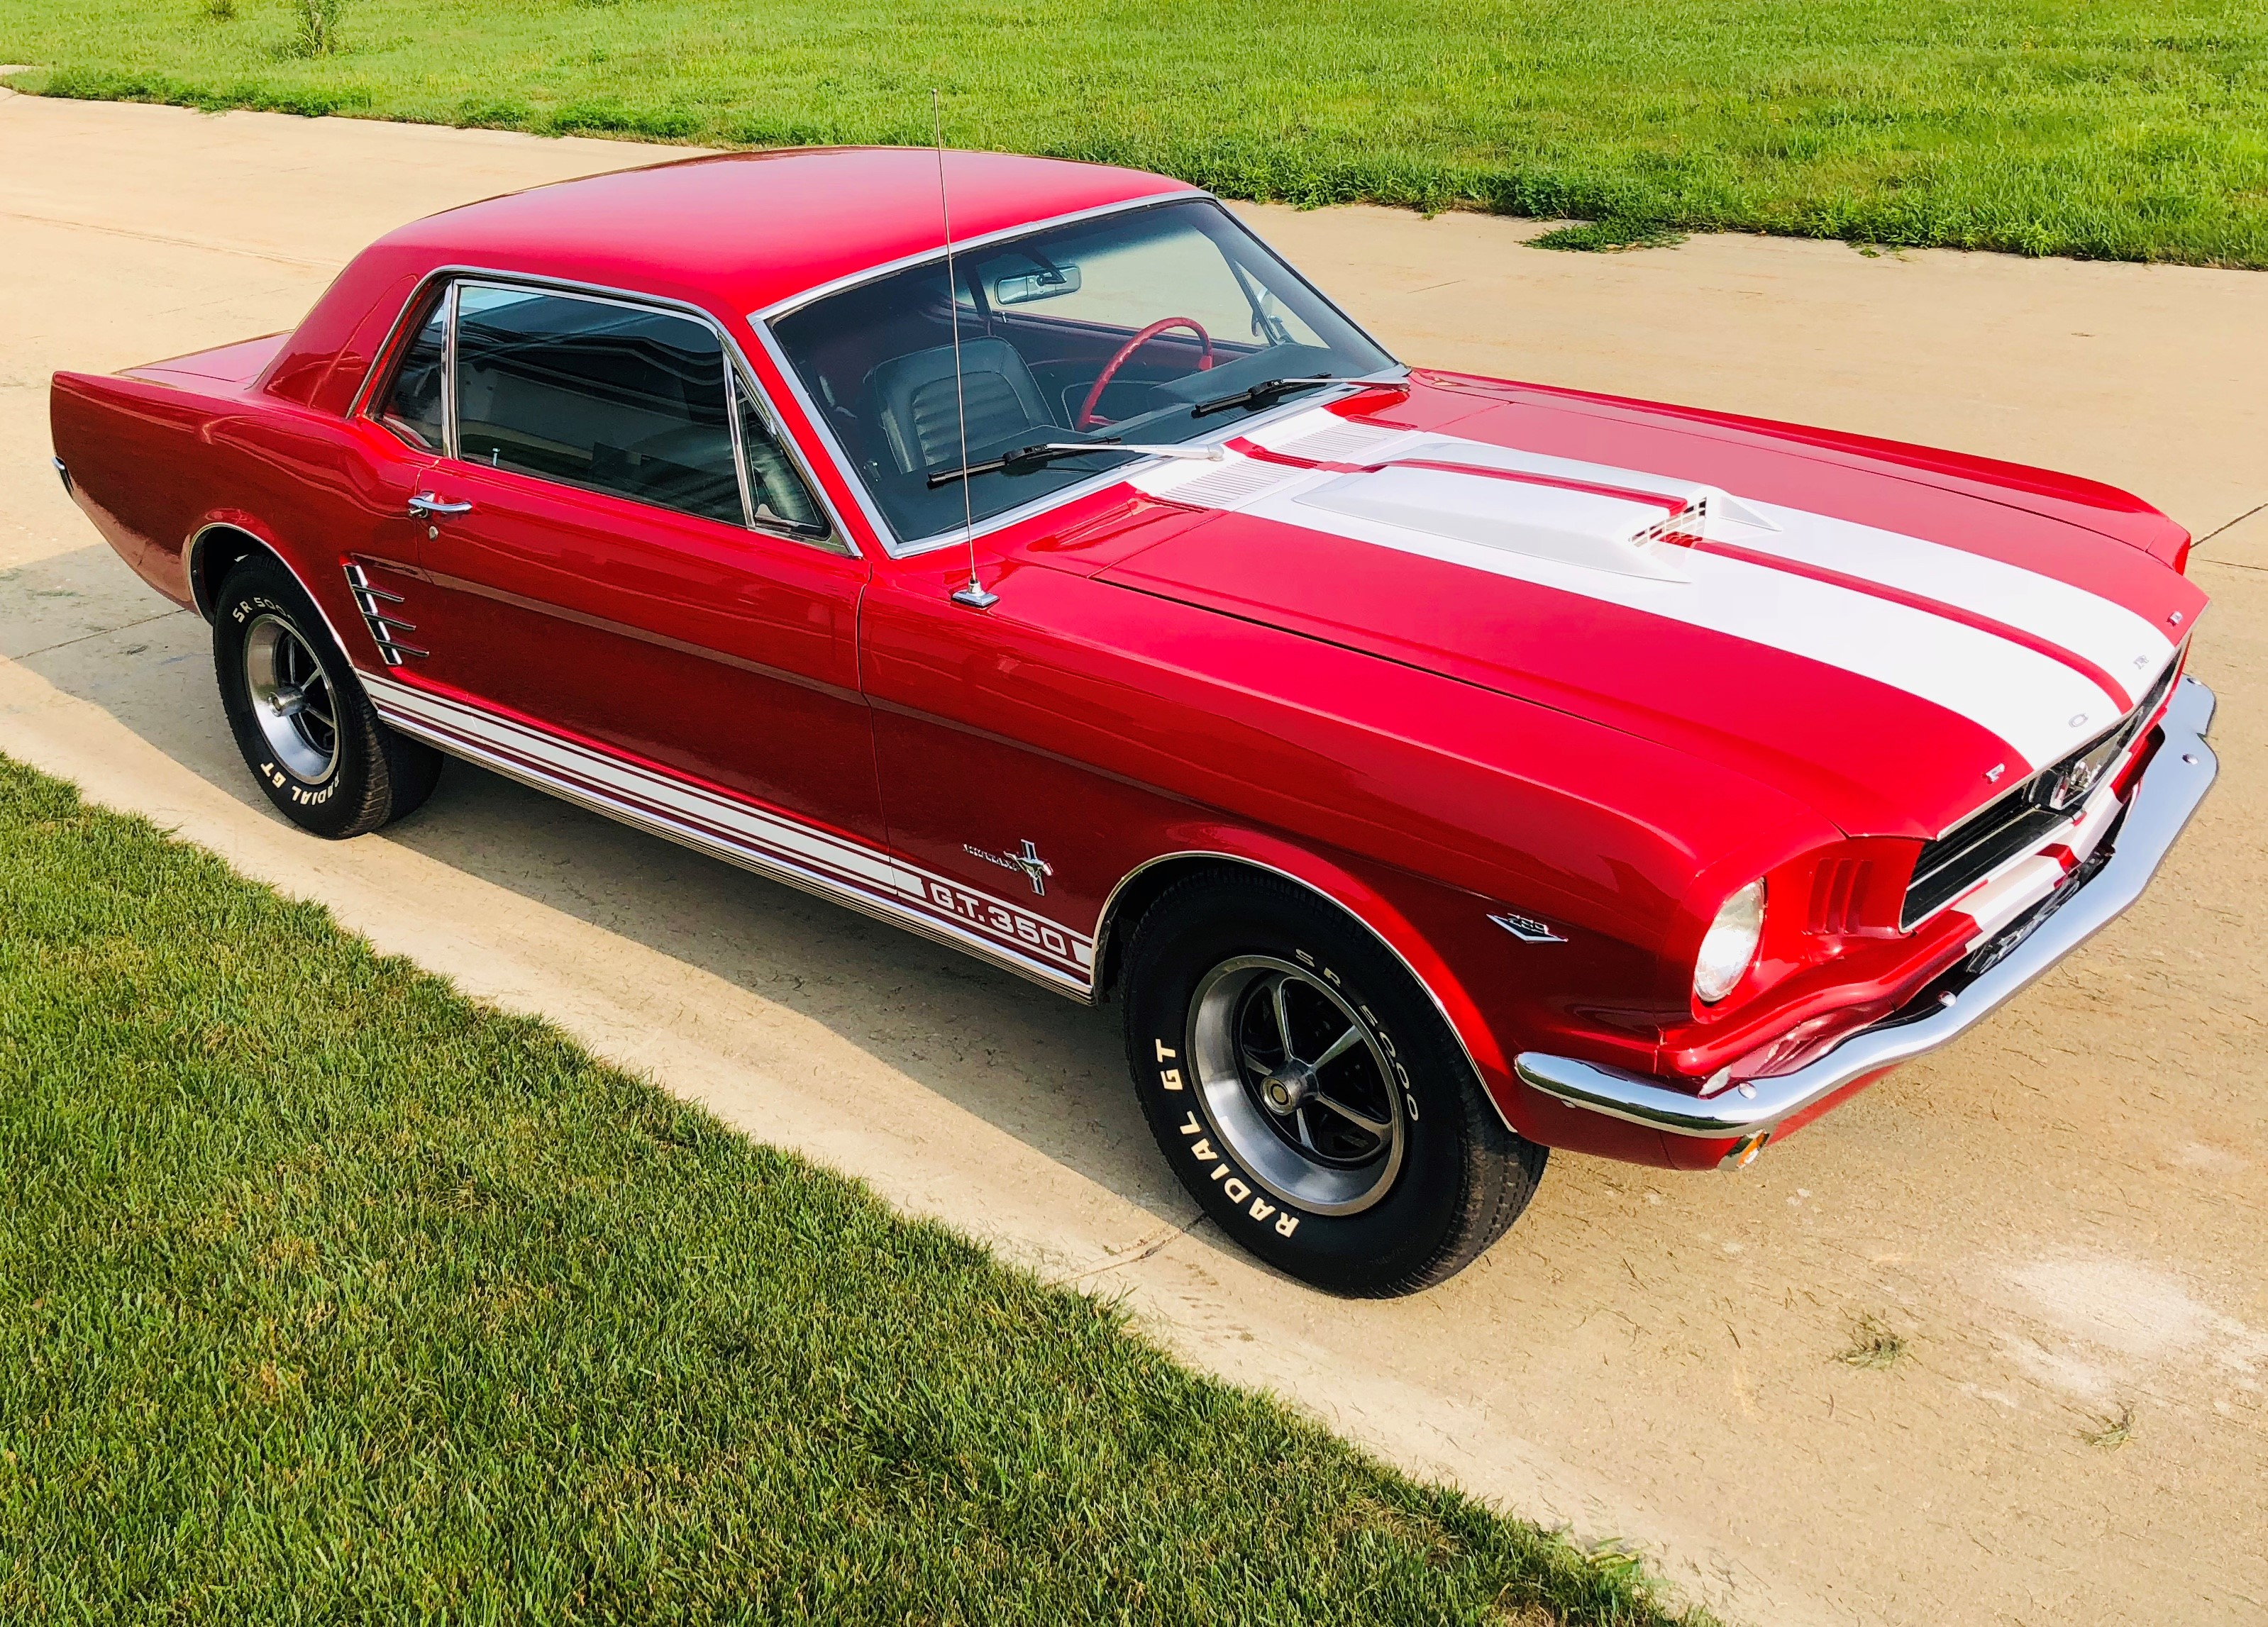 1966 Ford Mustang Coupe (GT350 Tribute)